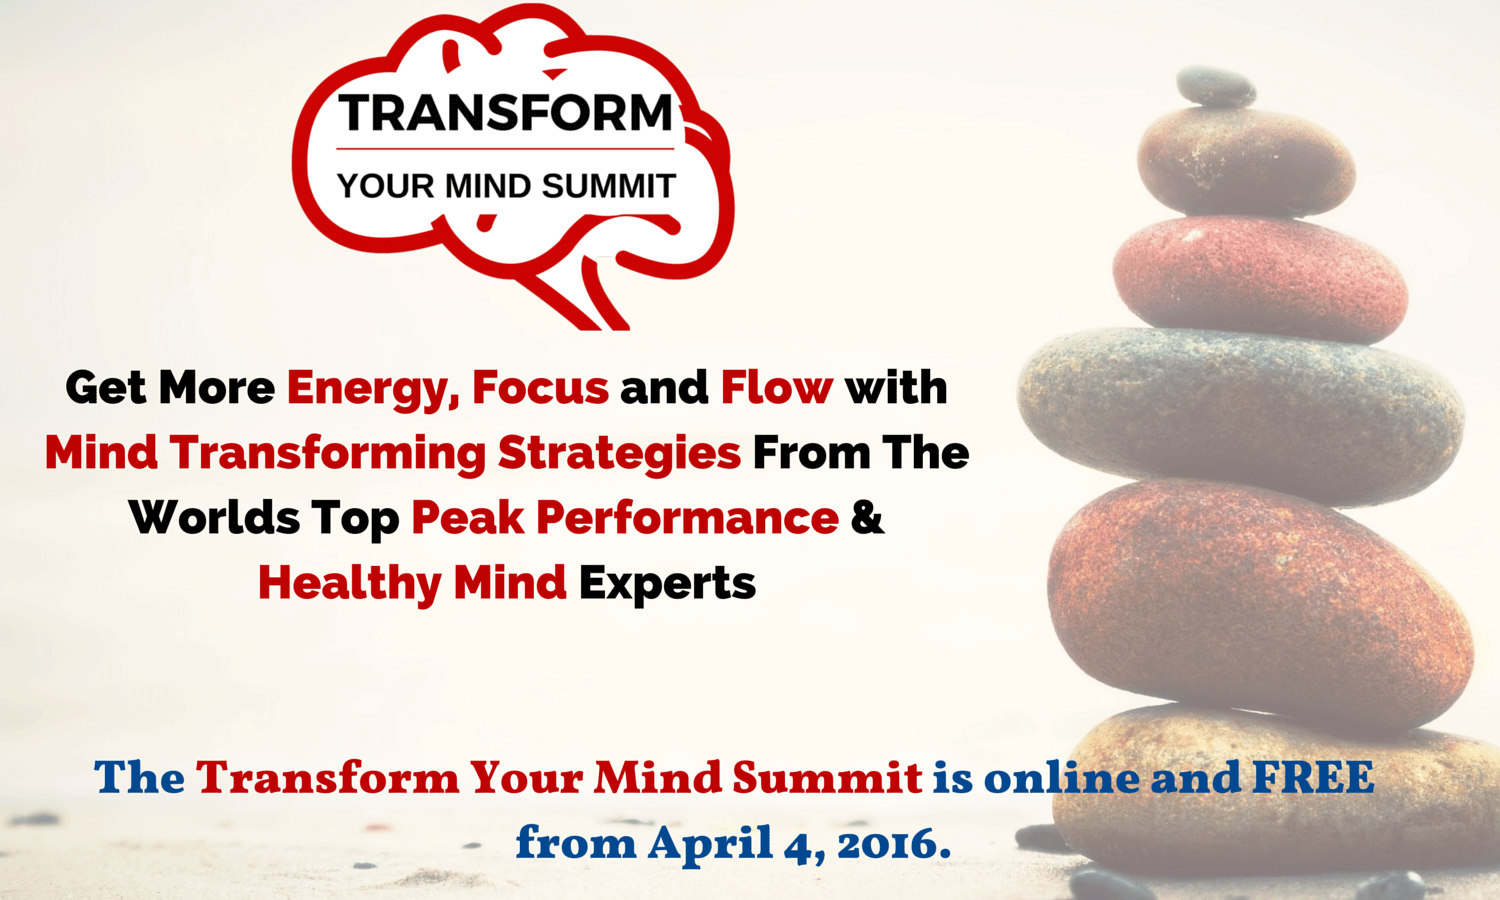 Transform Your Mind Summit